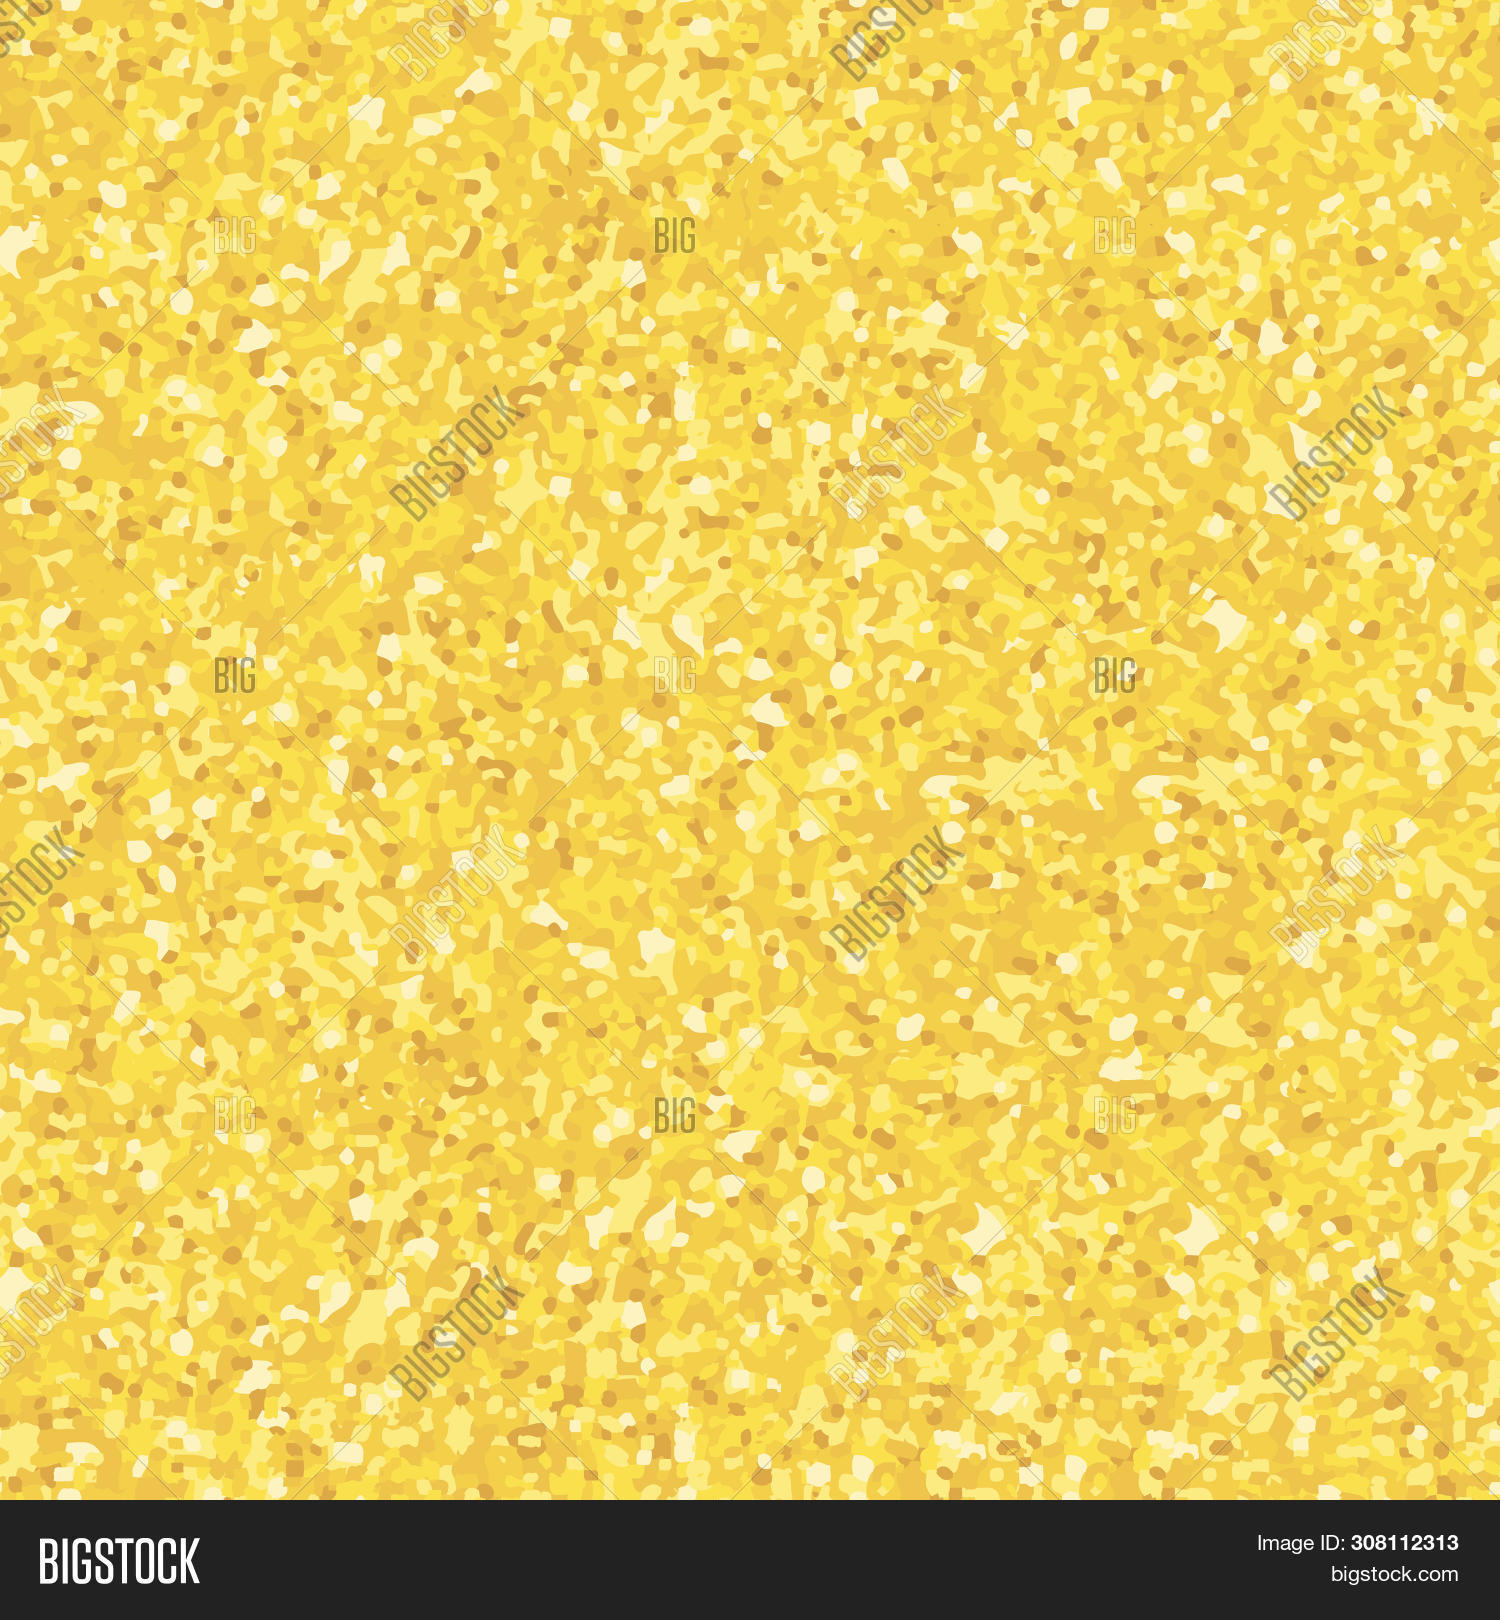 abstract,antique,backdrop,background,bright,bronze,color,decorative,design,elegant,foil,gold,golden,grunge,industrial,leaf,light,luxury,material,metal,metallic,modern,old,paper,pattern,plate,reflection,retro,rough,scratches,seamless,seemless,sheet,shiny,smooth,space,surface,texture,textured,vintage,wall,wallpaper,yellow